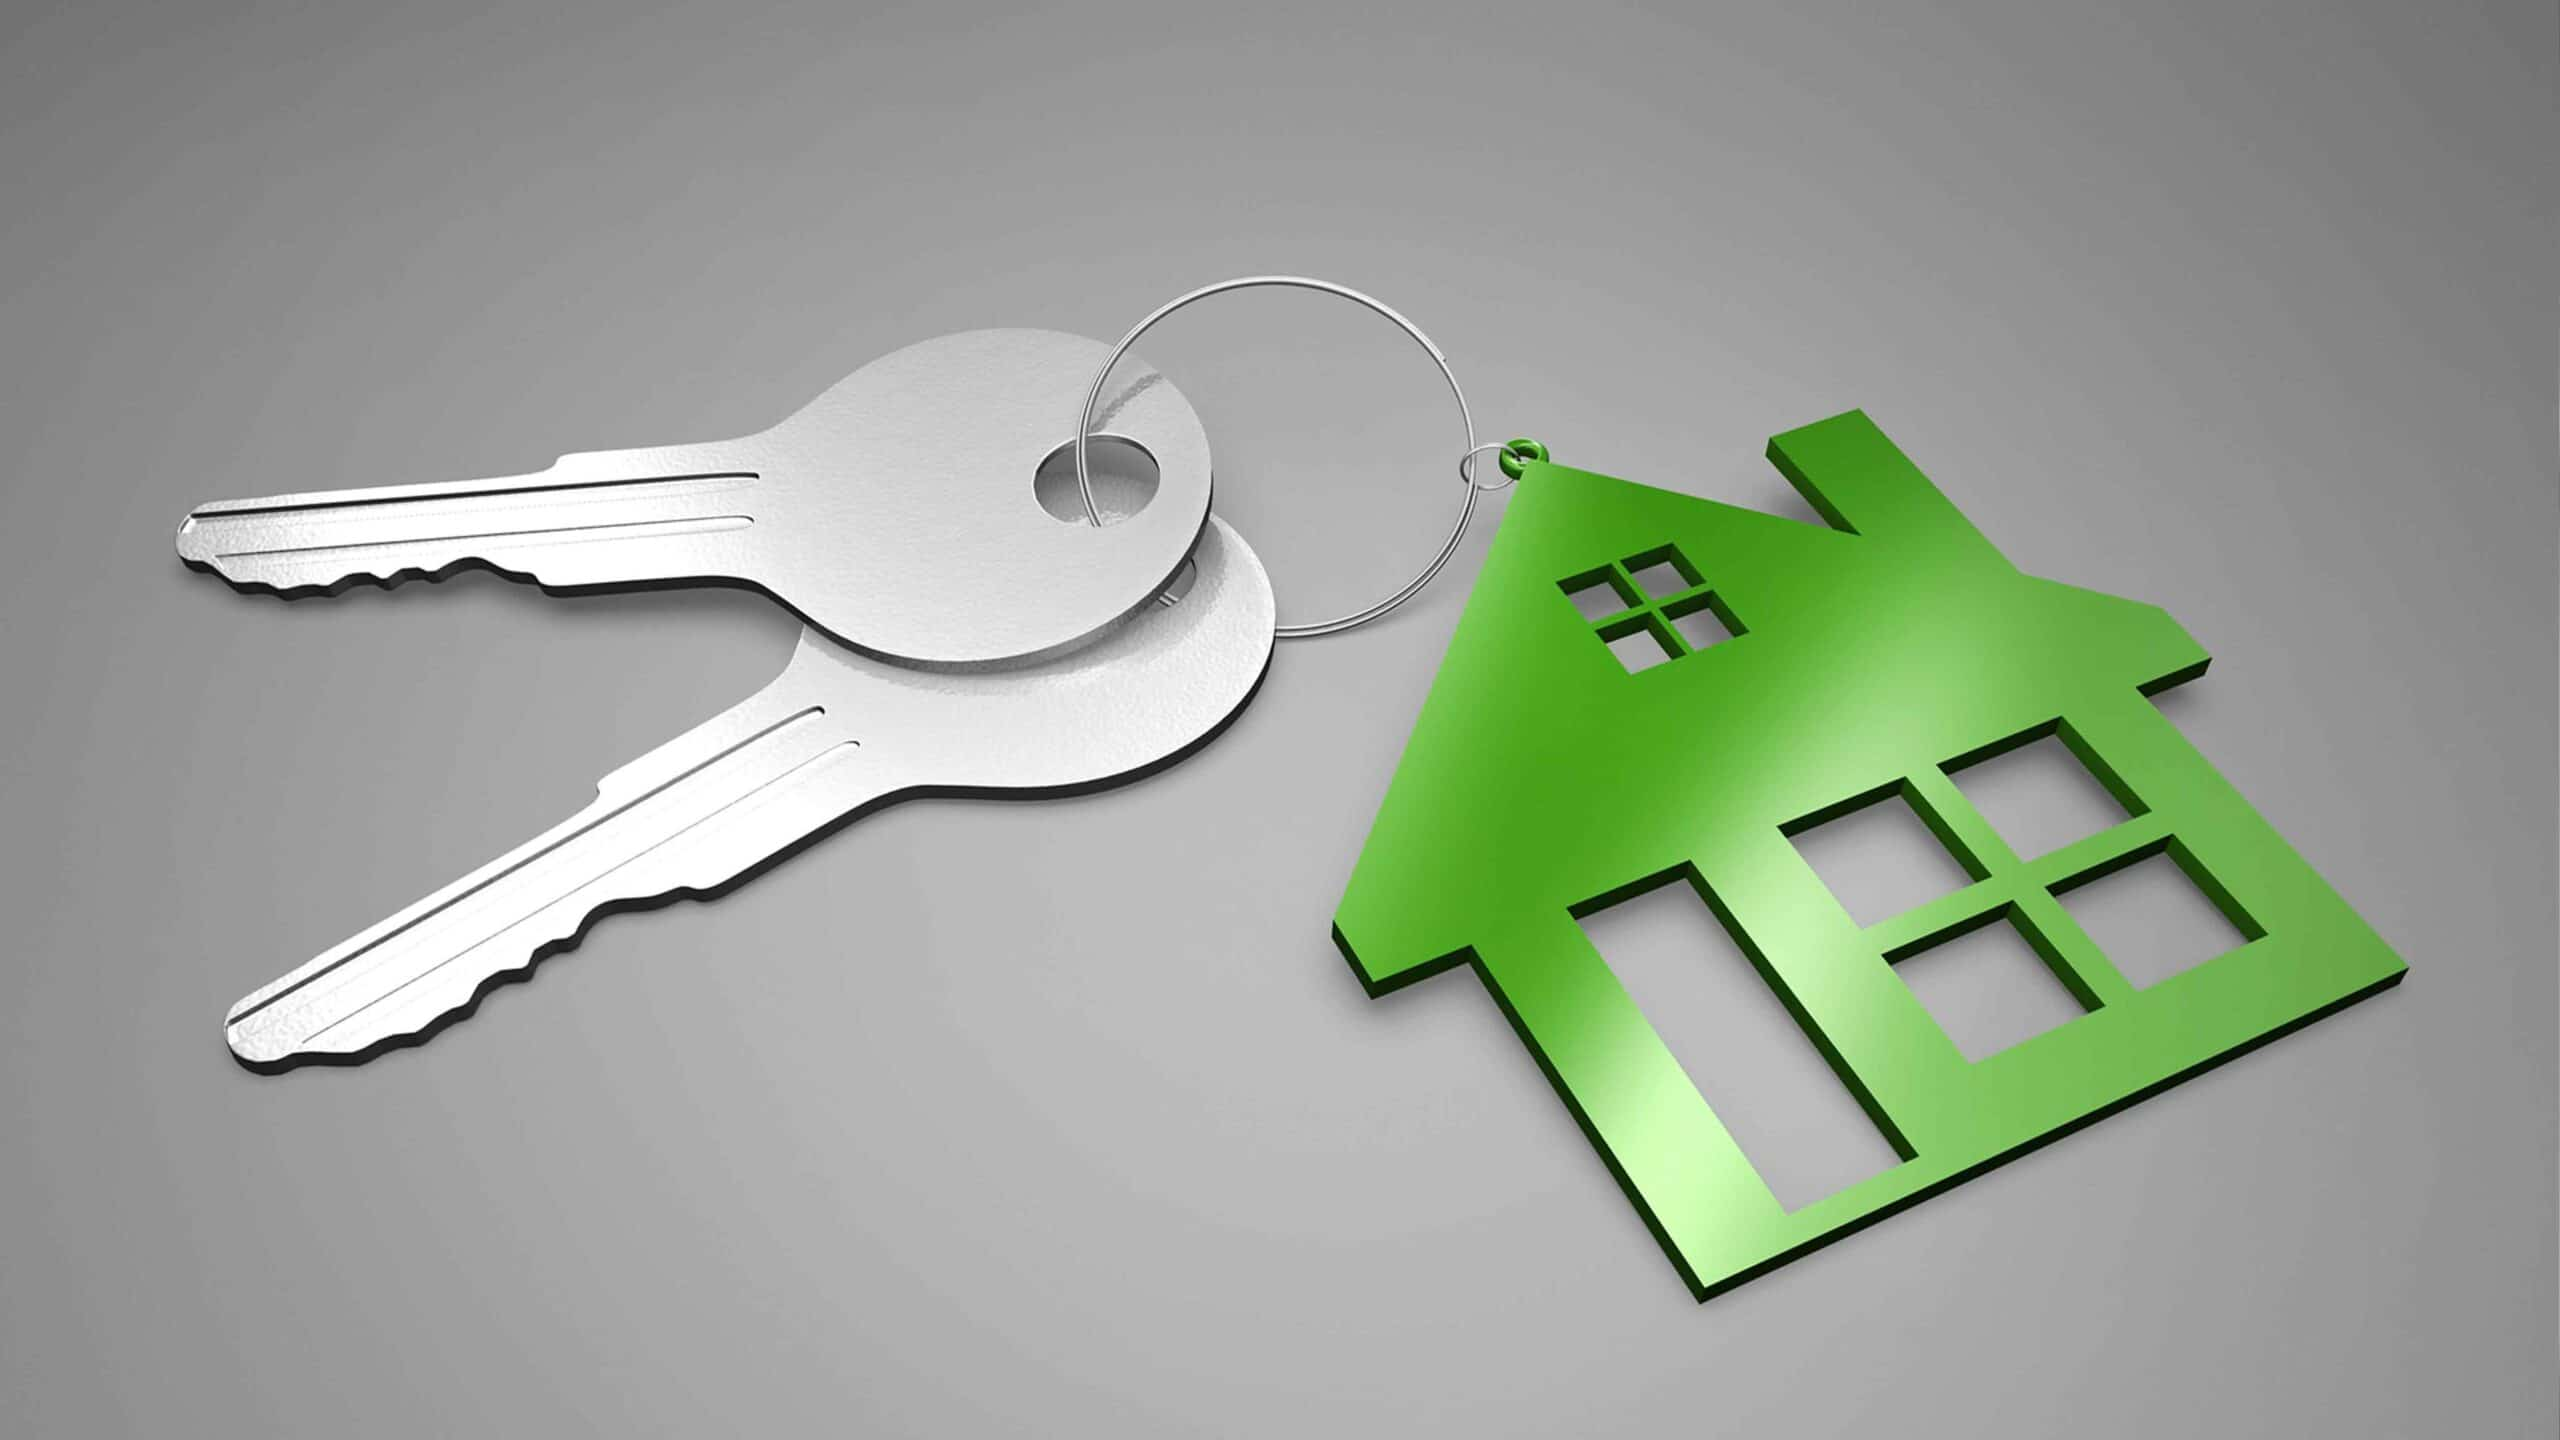 10 Important Housing Codes for Residential Landlords